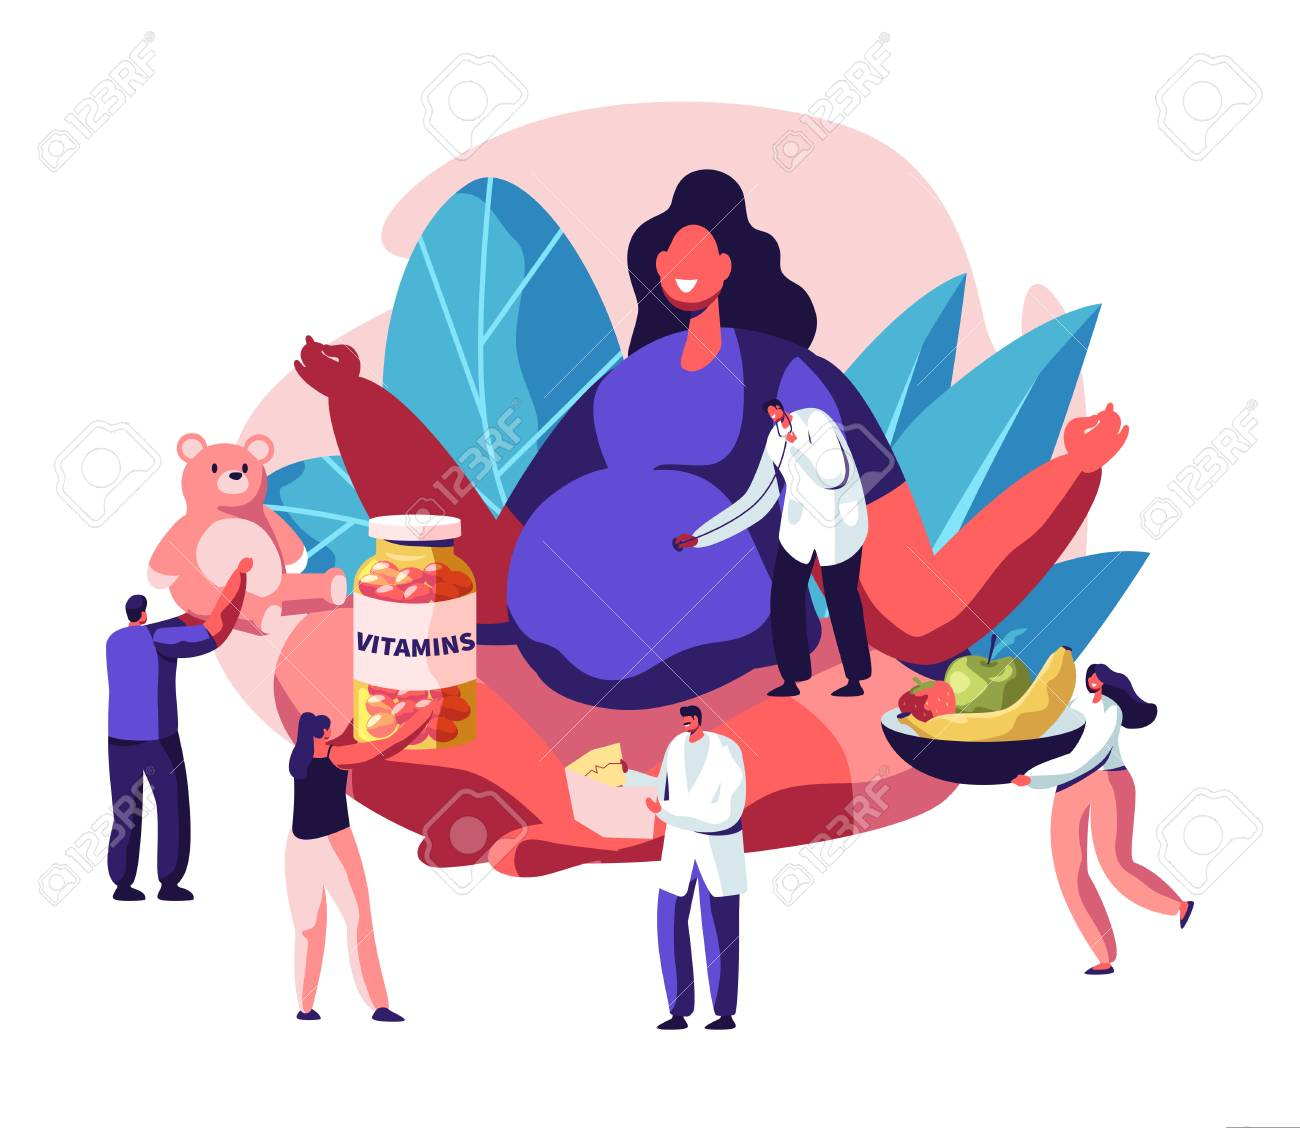 Huge Pregnant Woman with Big Belly Sitting in Lotus Pose Surrounded with Doctors Giving her Vitamines, Baby Toys, Healthy Nutrition. Female Character Happy Pregnancy, Cartoon Flat Vector Illustration - 122636463